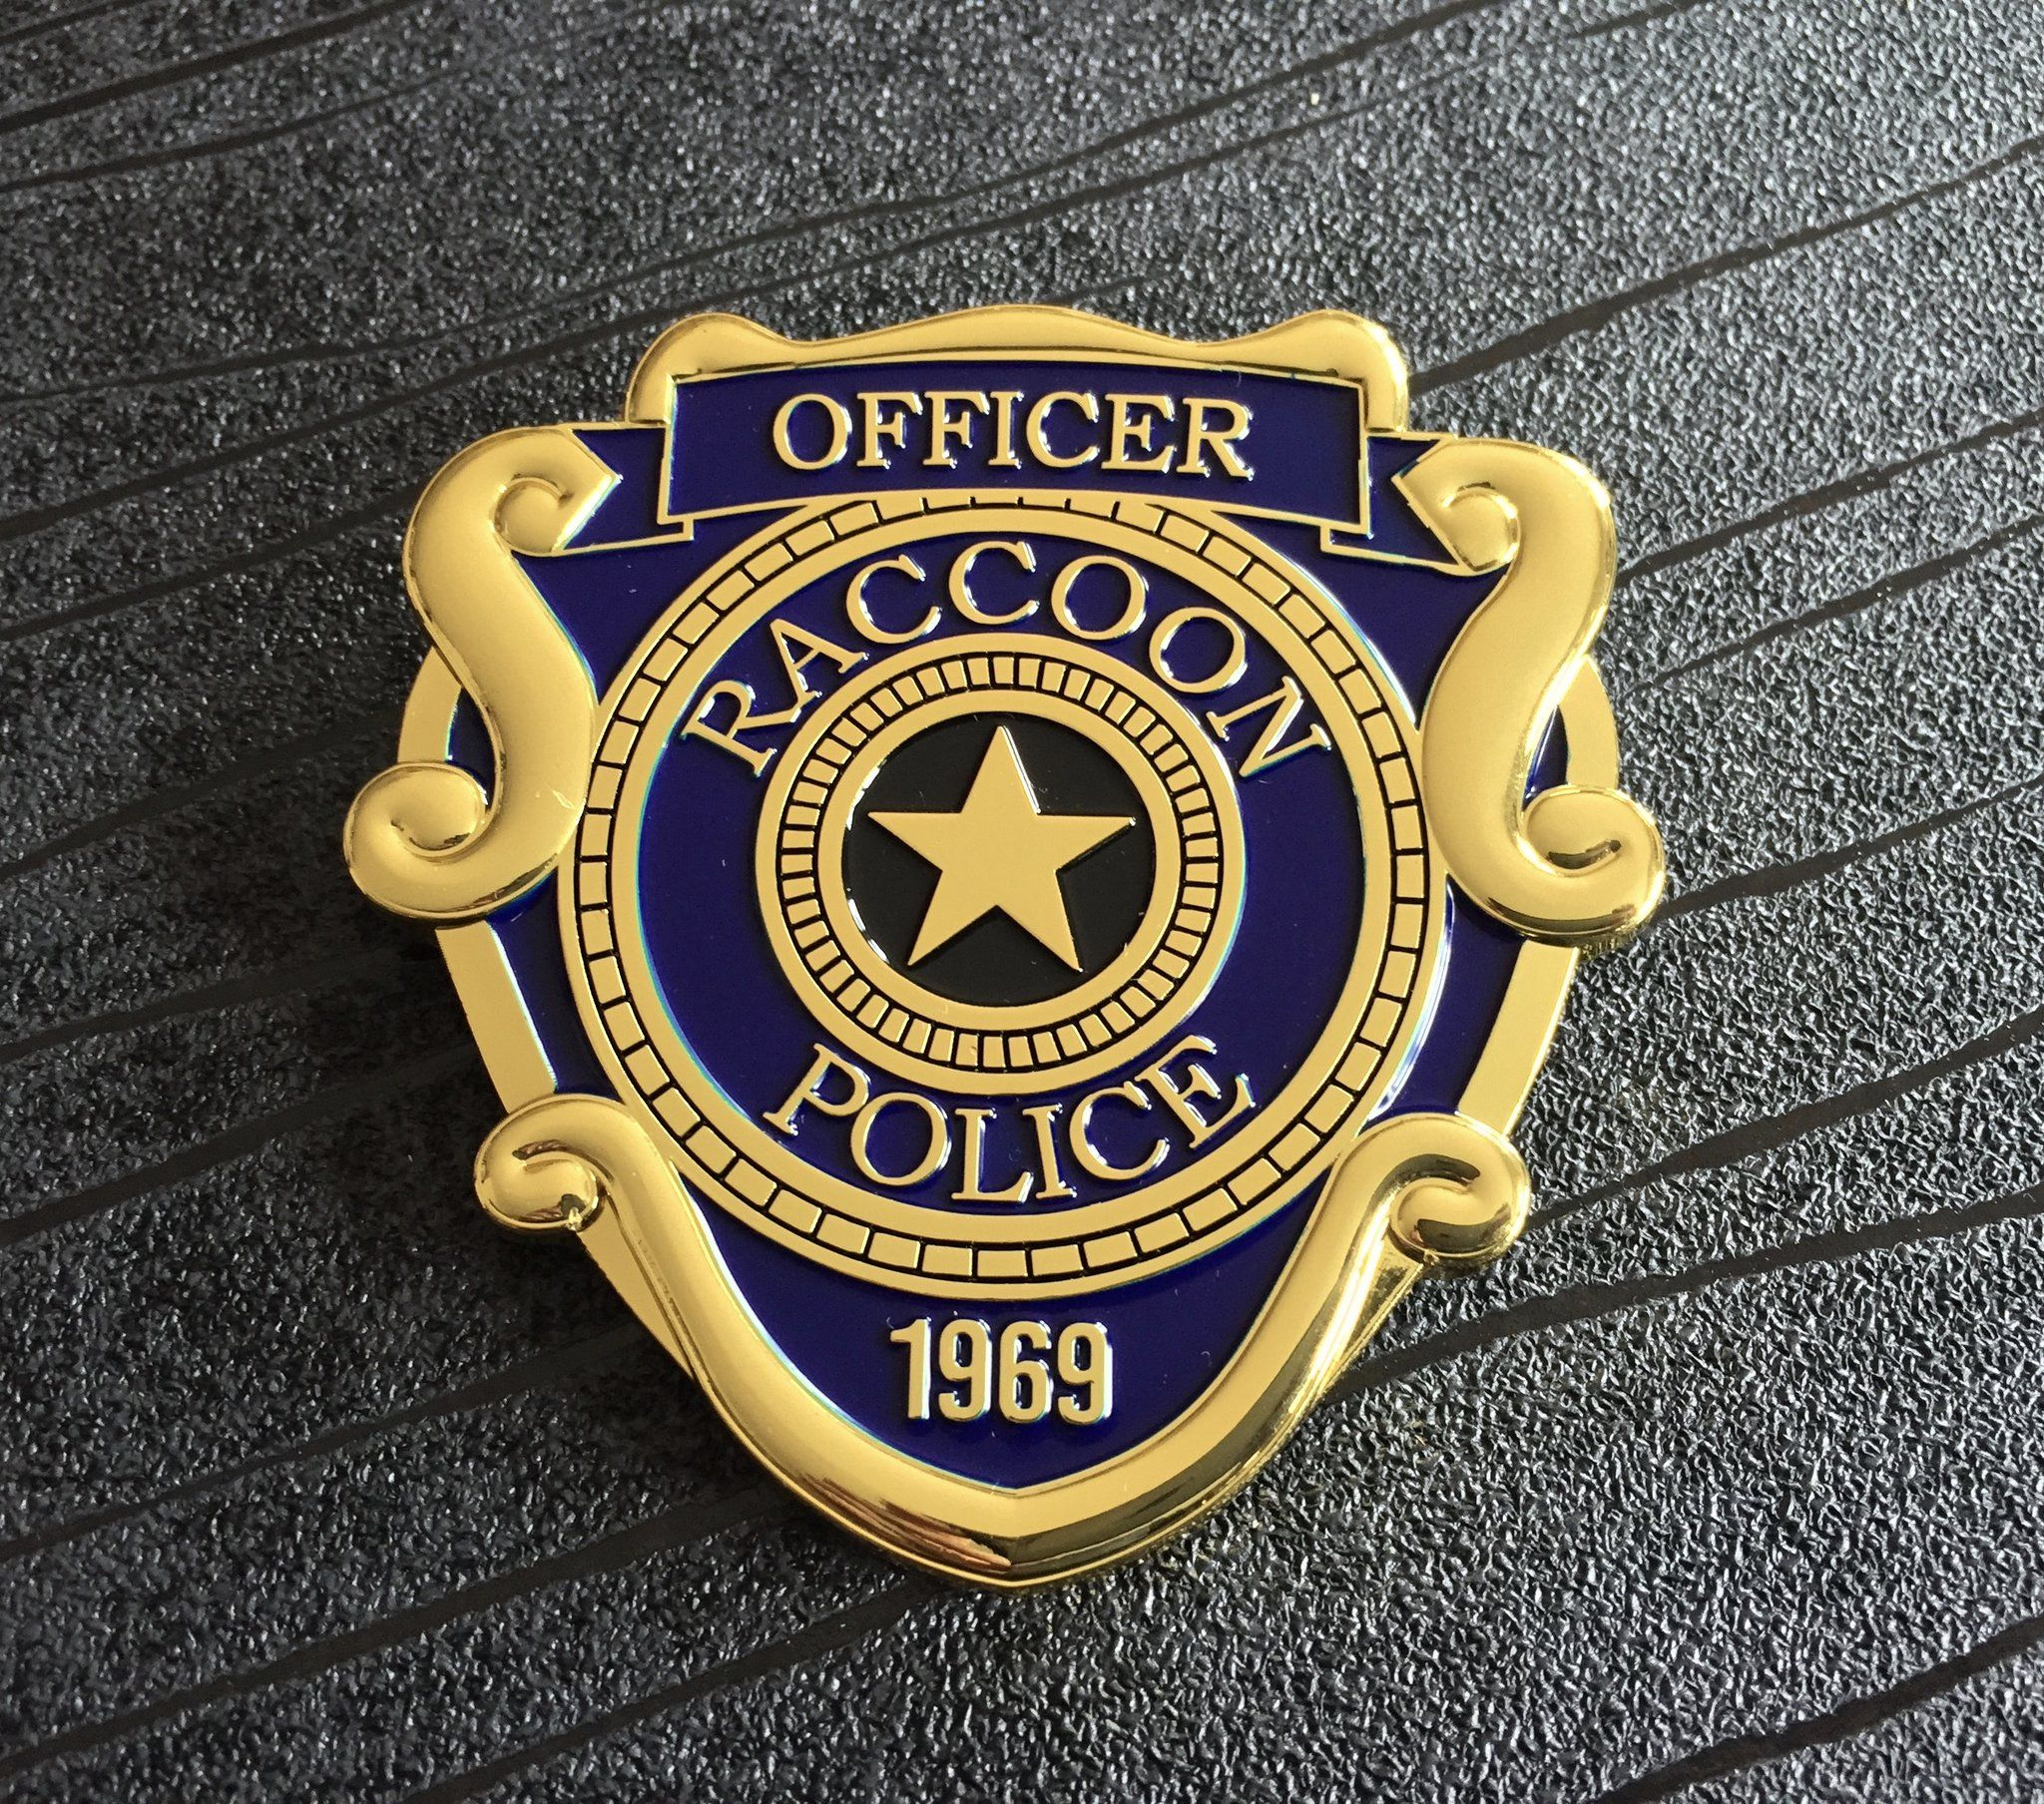 Resident Evil 2 Remake Raccoon City Police Officer Metal Prop Costume Cosplay Badge 75mm X 74mm Resident Evil Raccoon City Resident Evil Metal Props